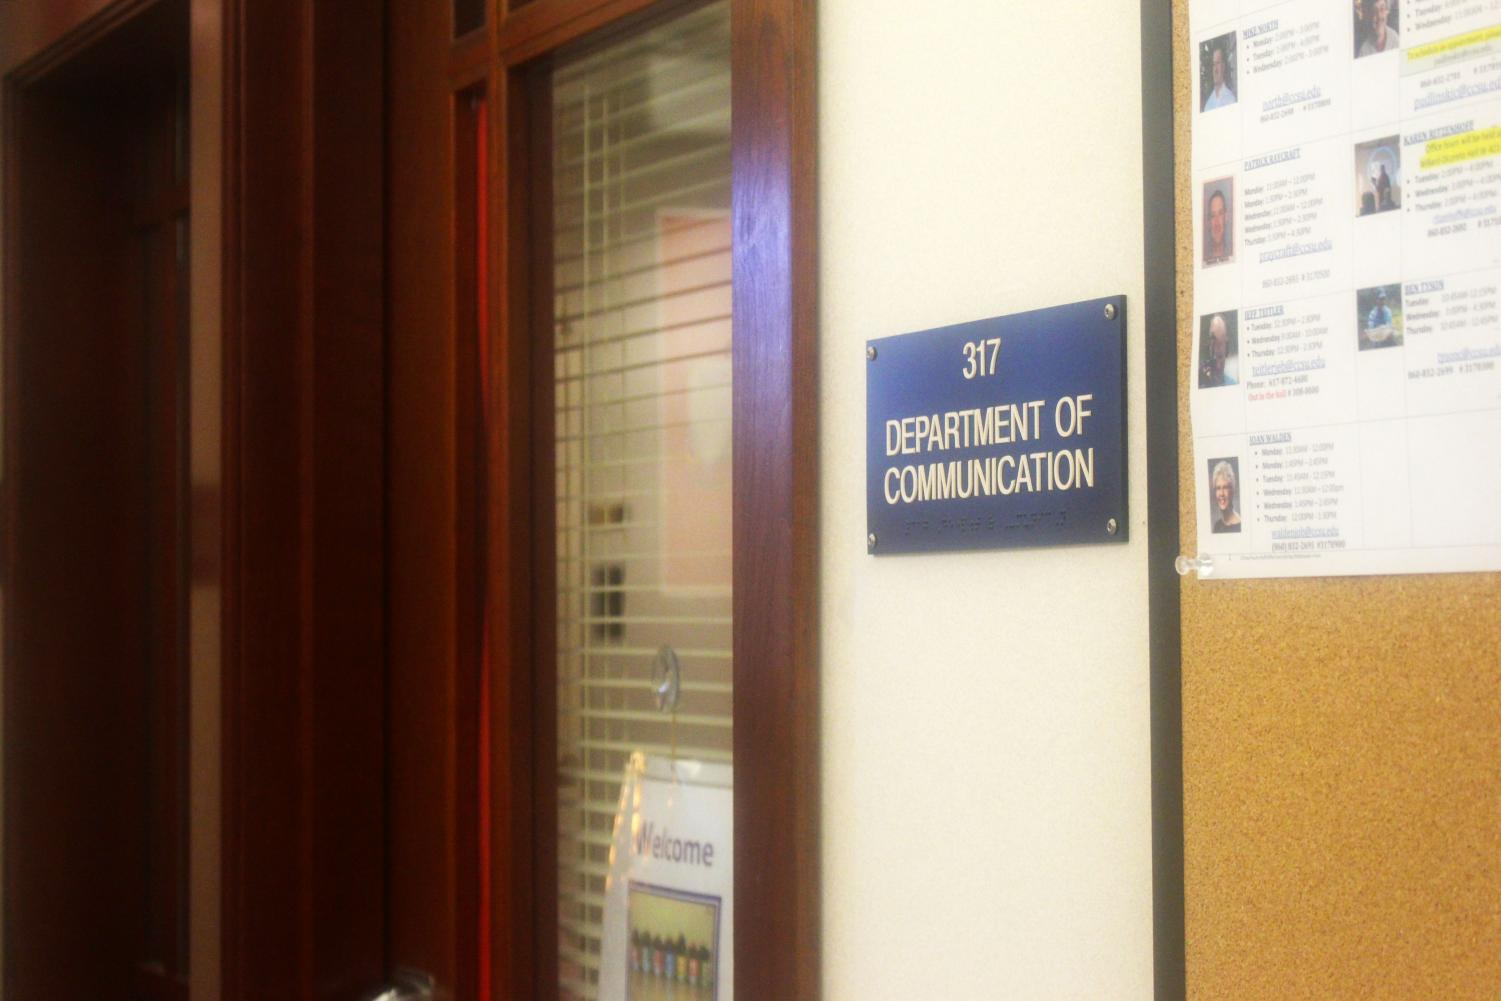 Within the Communication Department, there are different views on how the department should function.